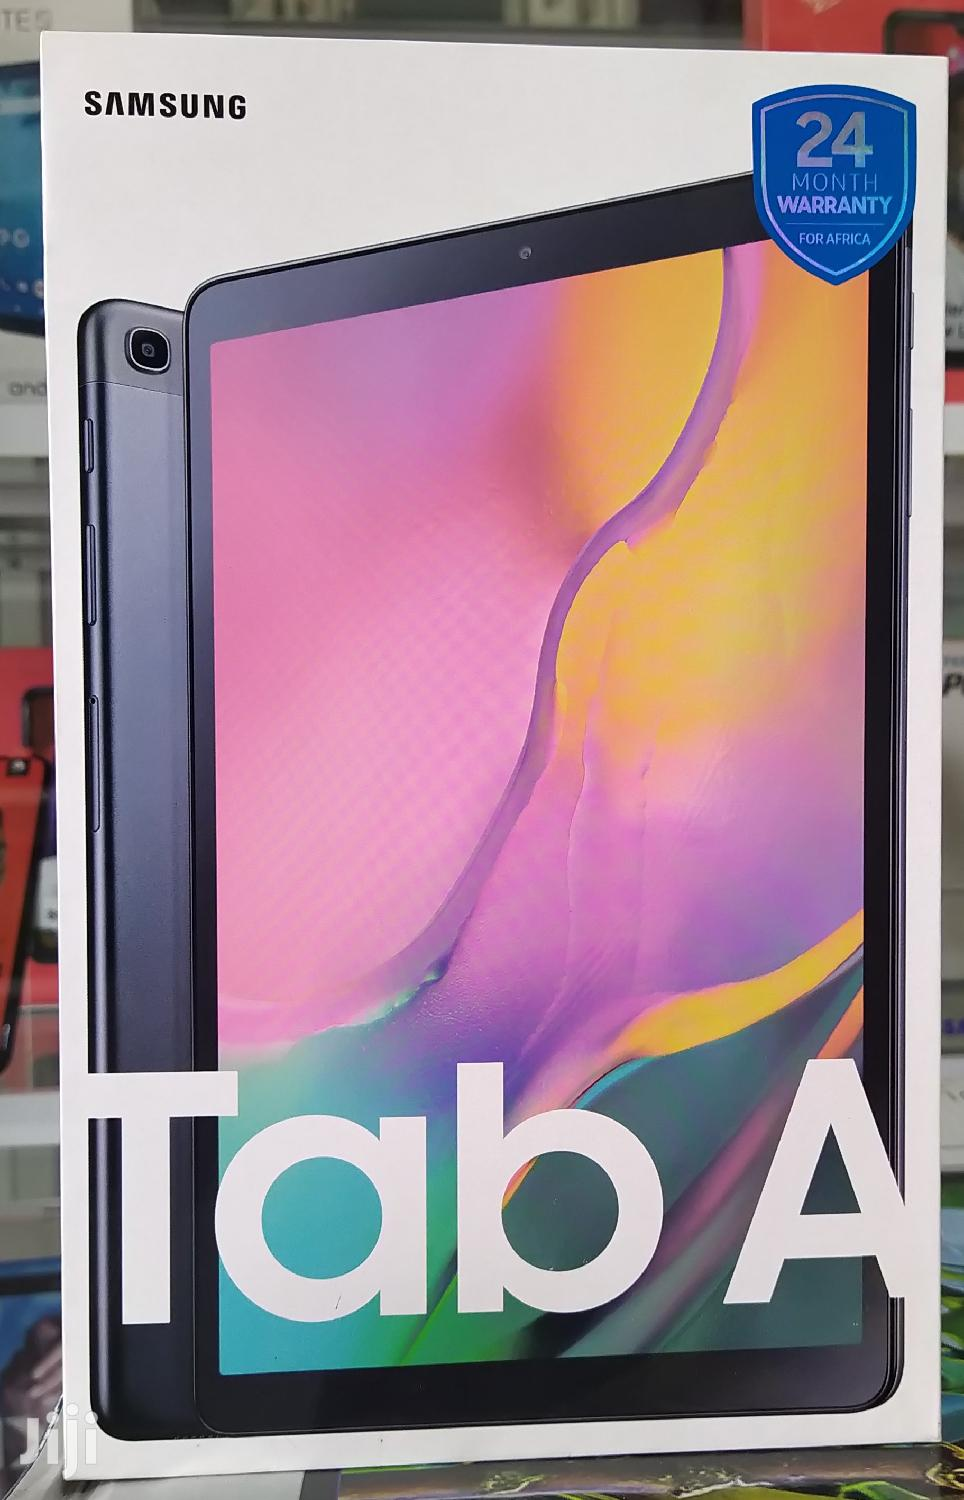 New Samsung Galaxy Tab A 10.1 32 GB Gray | Tablets for sale in Avenor Area, Greater Accra, Ghana